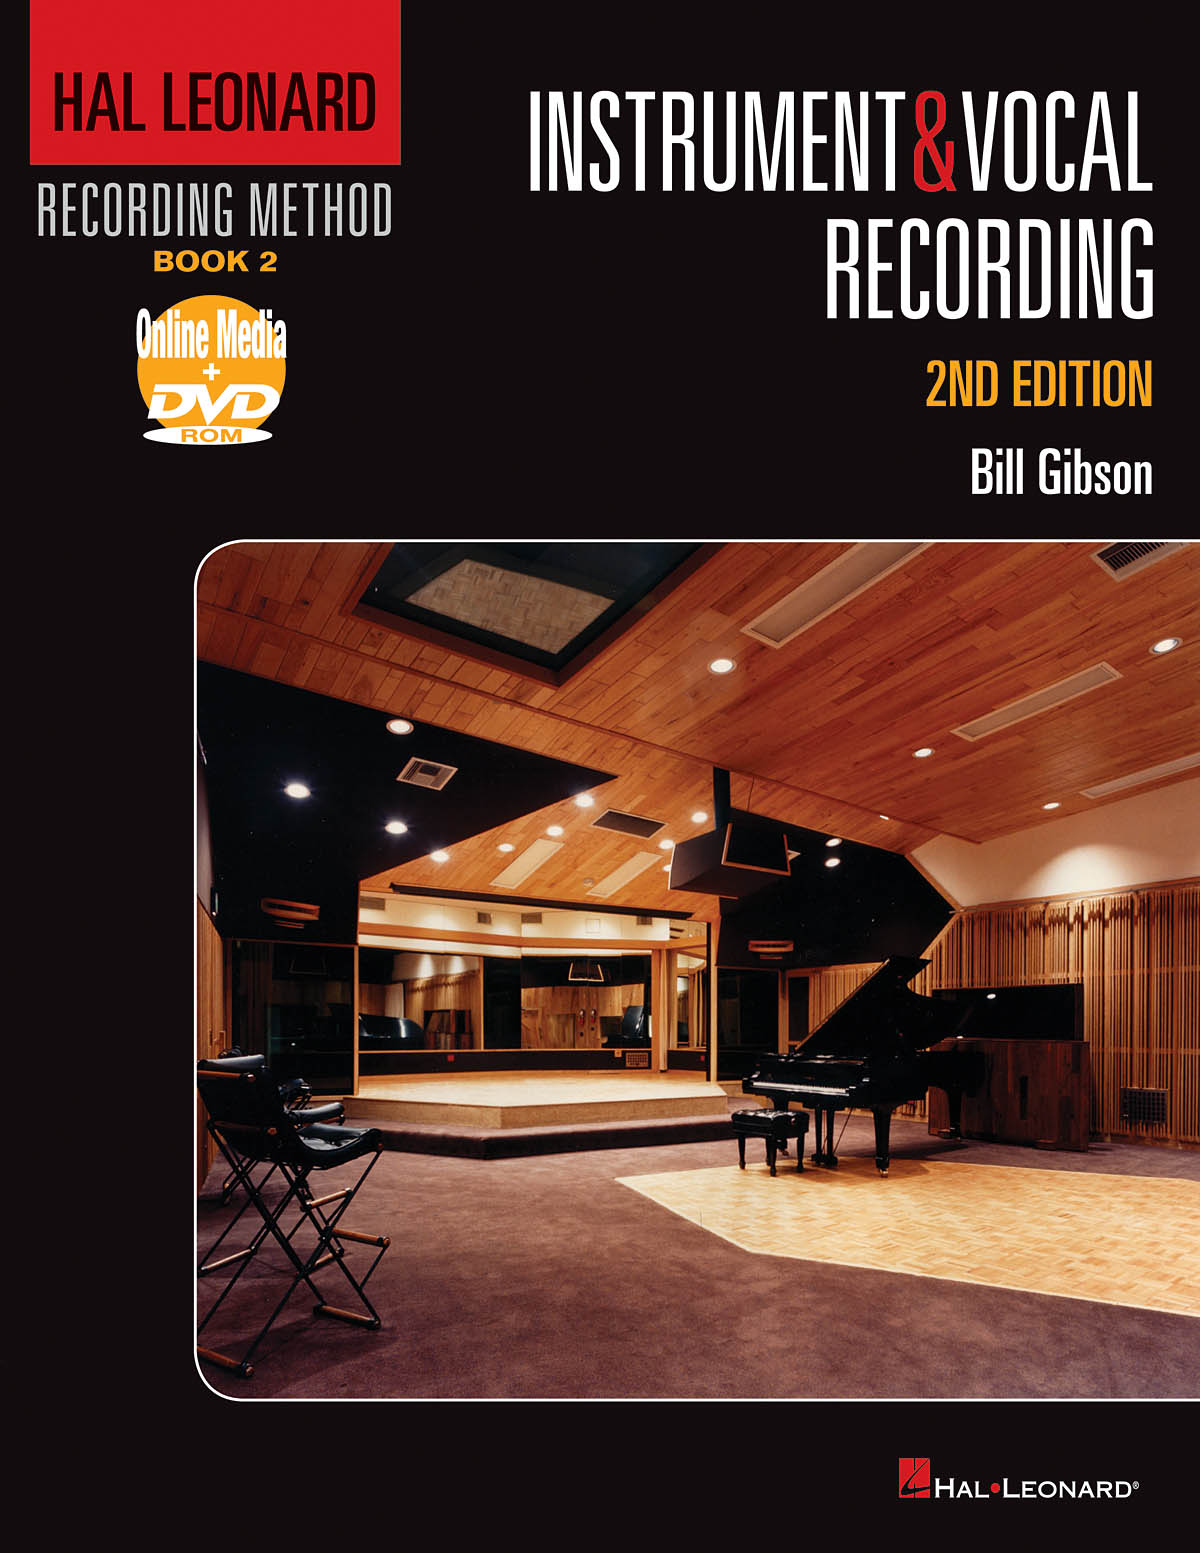 Hal Leonard Recording Method – Book 2: Instrument & Vocal Recording – 2nd Edition